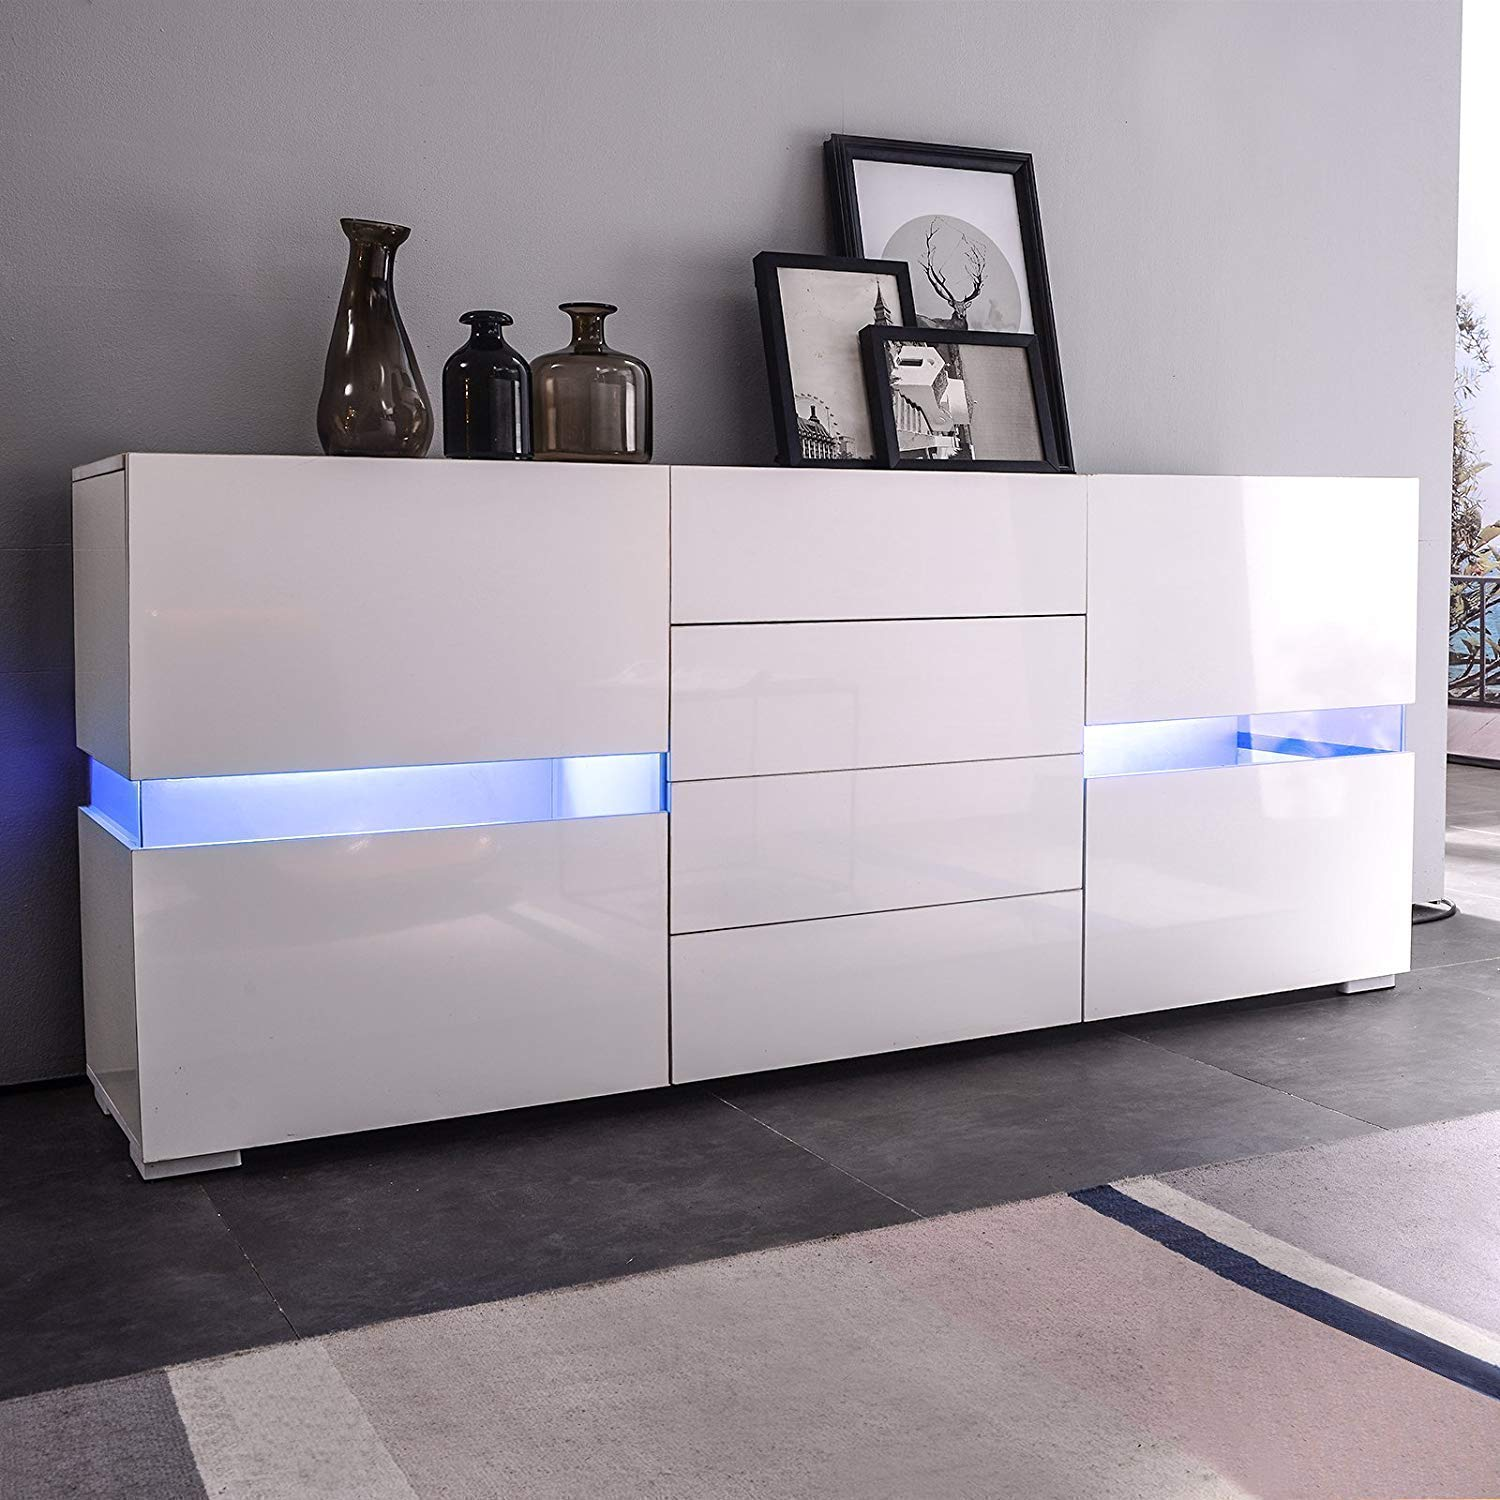 mecor Sideboard Cabinet Buffet w/LED Light,Kitchen Sideboard and Storage Cabinet/TV Stand High Gloss LED Dining Room Server Console Table 2 Doors & 4 Drawers White by mecor